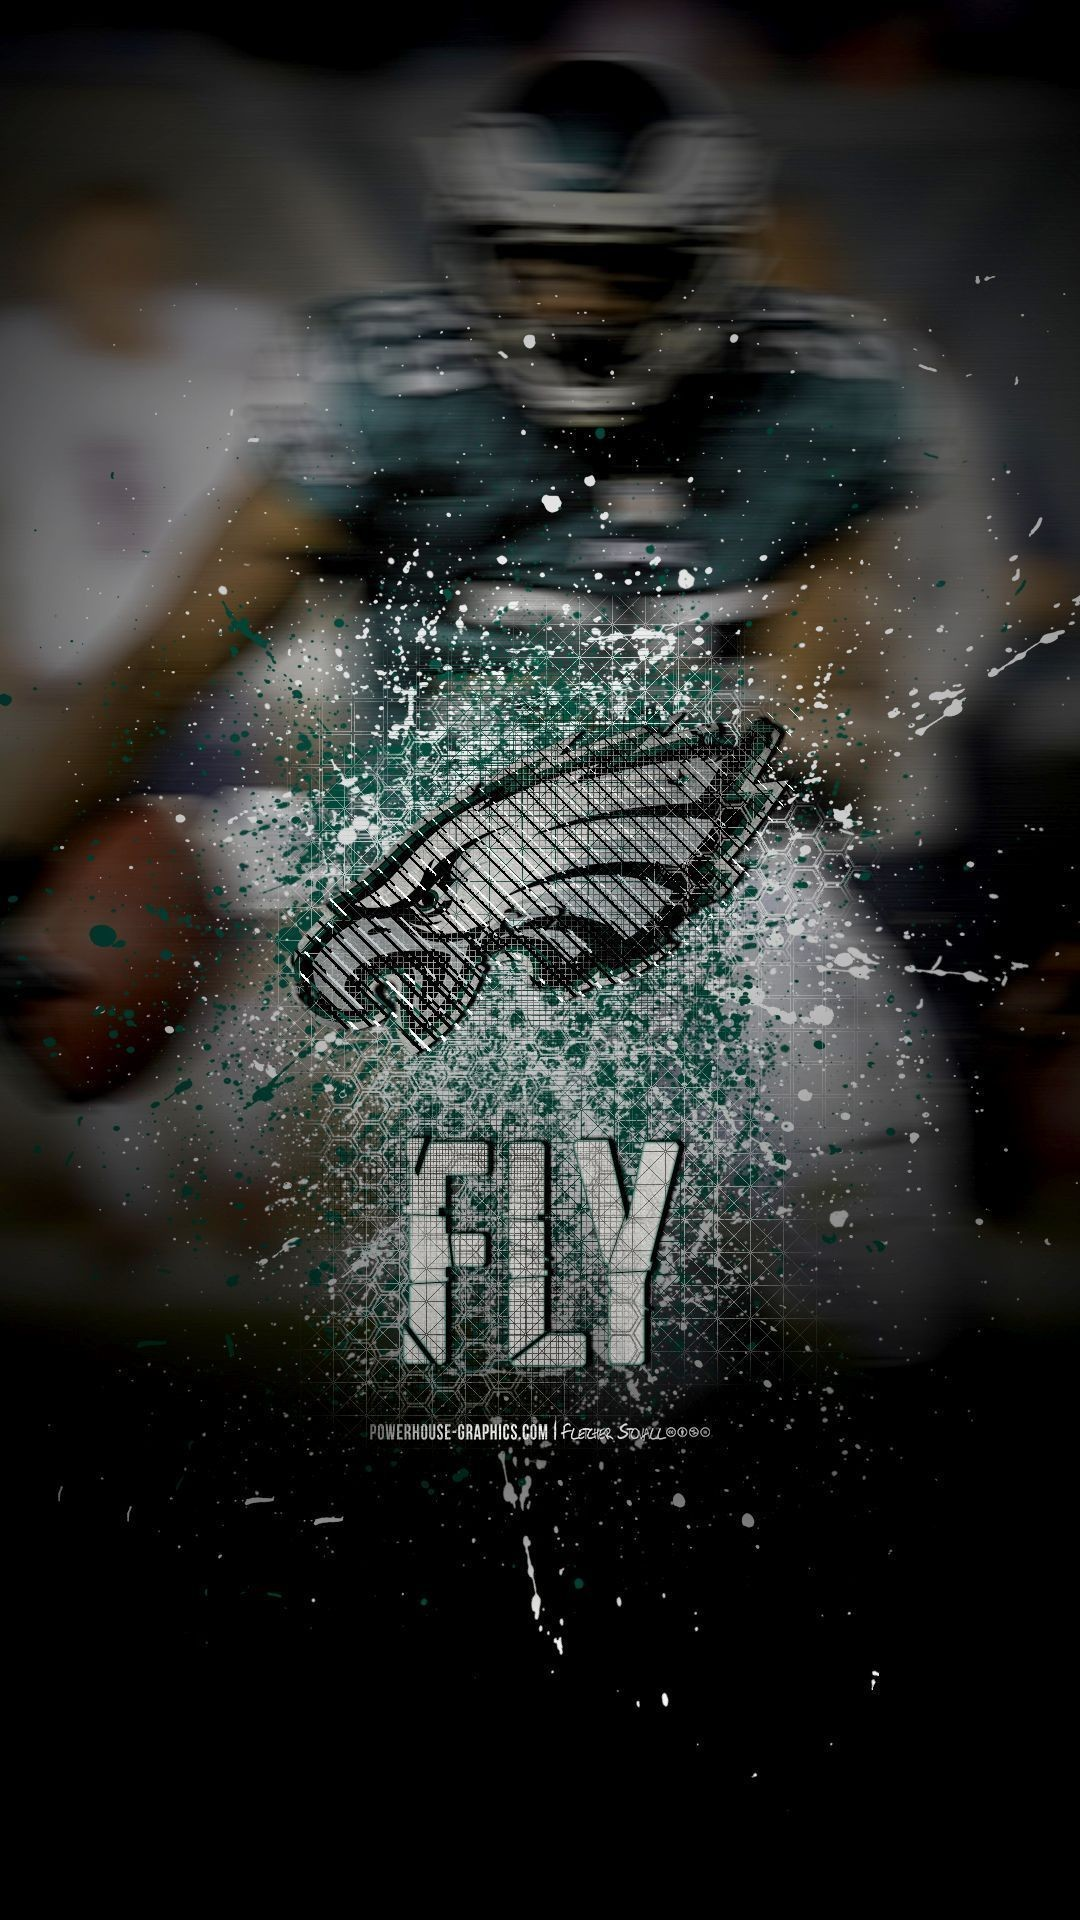 1920x1080 2017 Philadelphia Eagles Wallpapers - PC |iPhone| Android